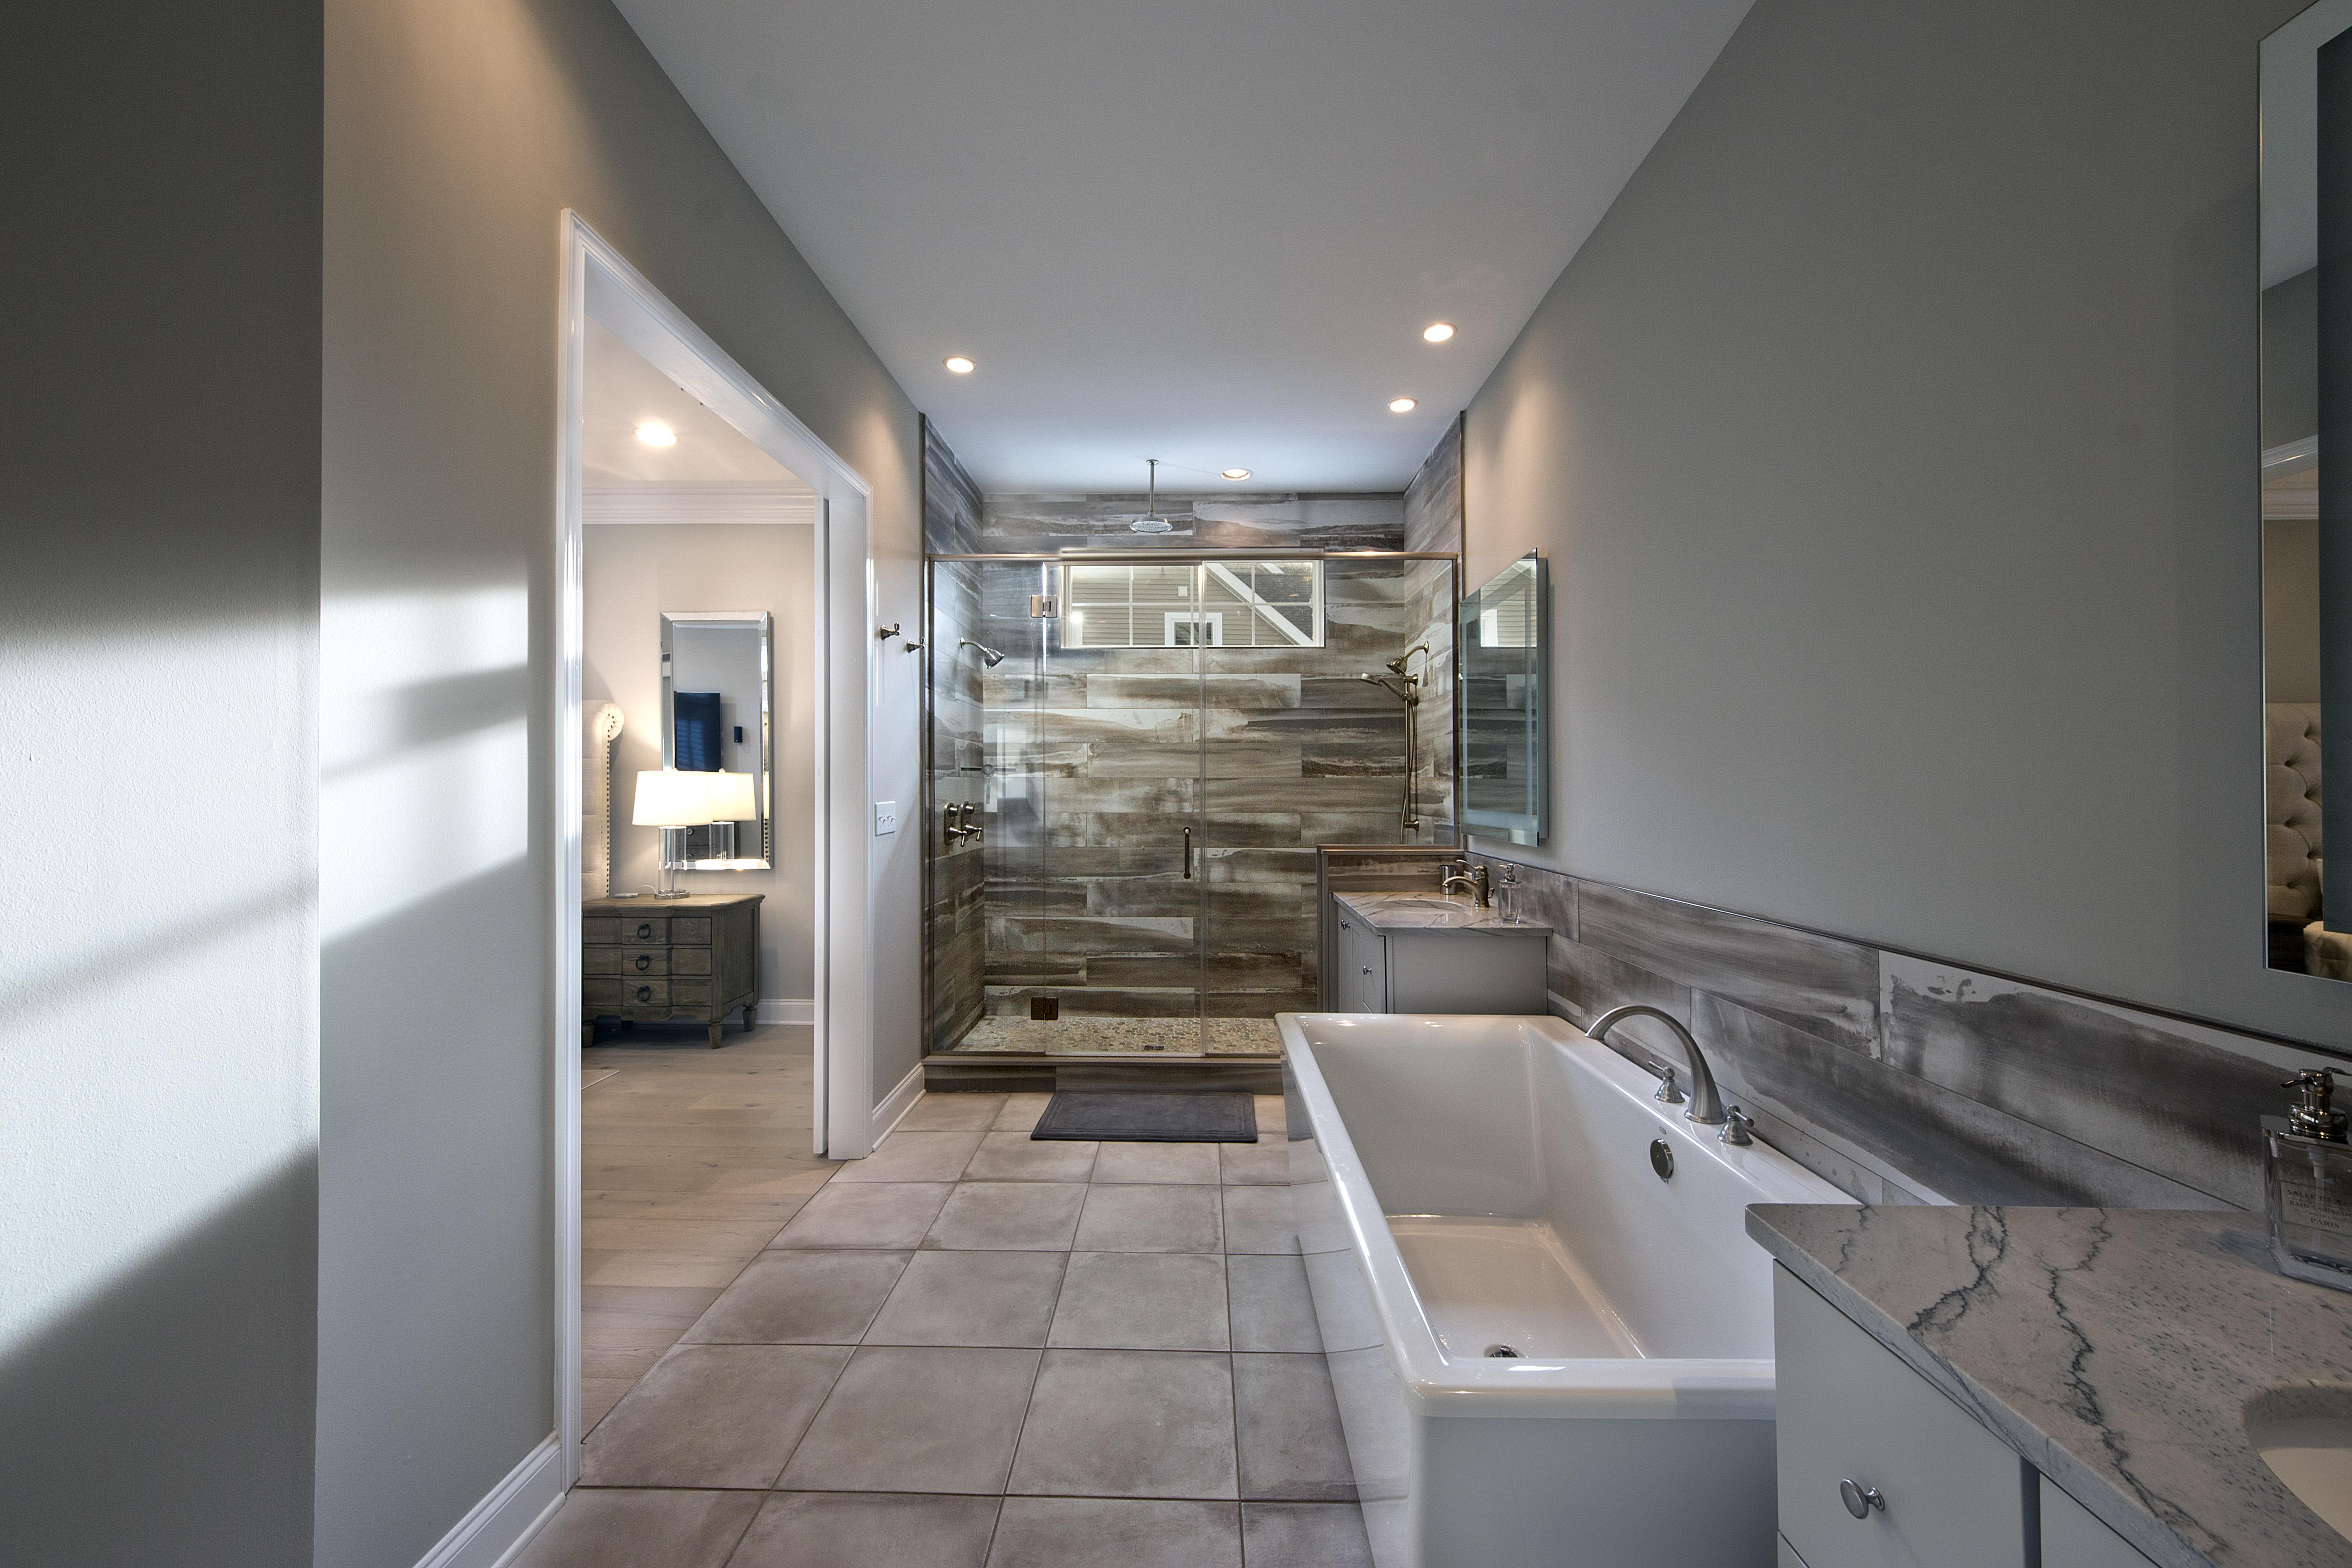 Bathroom featured in The Georgetown By Ashburn Homes in Sussex, DE